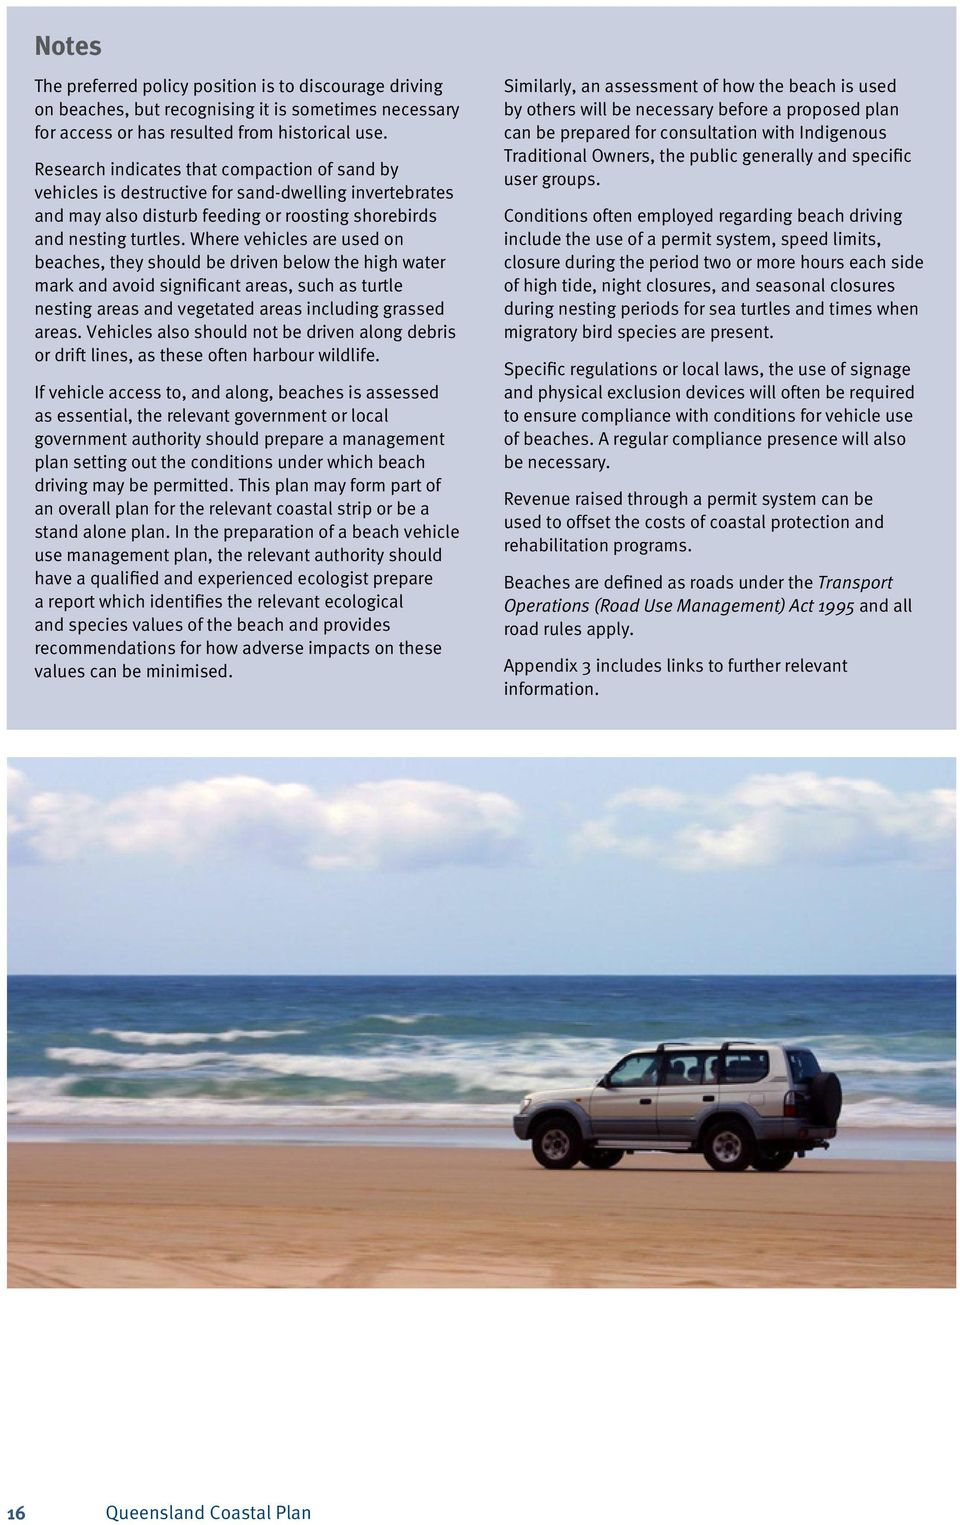 Where vehicles are used on beaches, they should be driven below the high water mark and avoid significant areas, such as turtle nesting areas and vegetated areas including grassed areas.